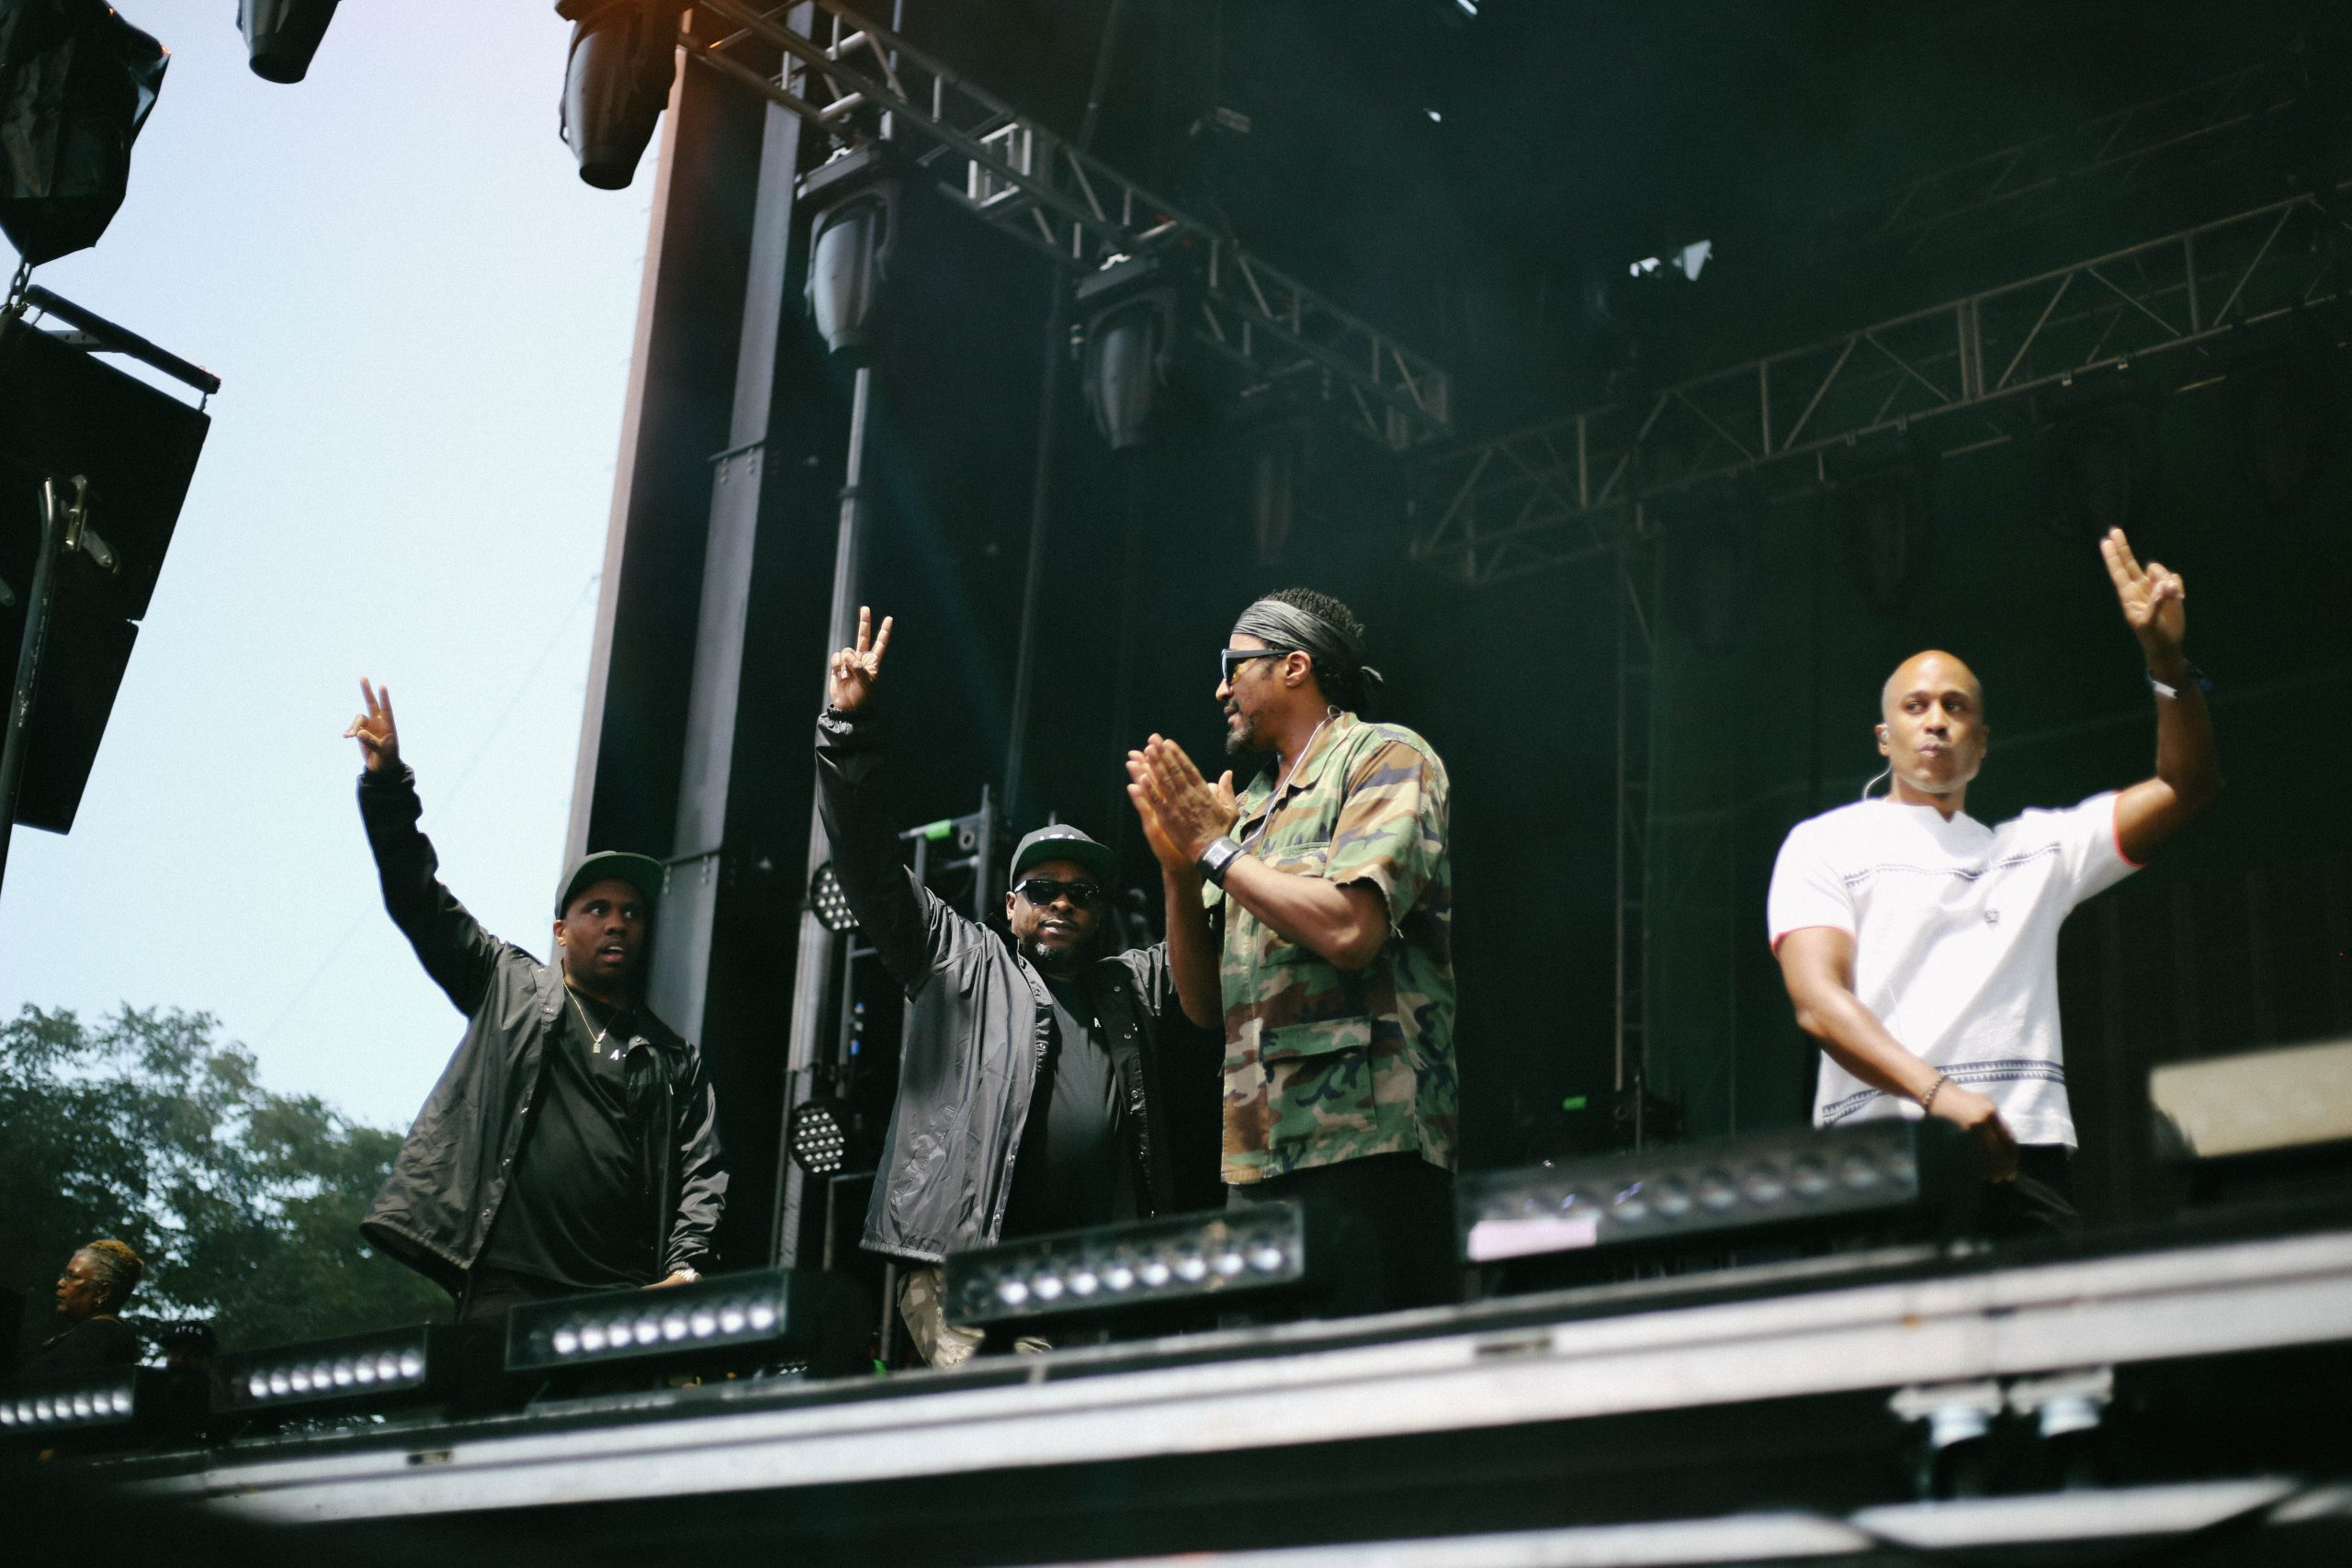 Consequence, Jarobi White, Q-Tip, and Ali Shaheed Muhammad greet their fans.